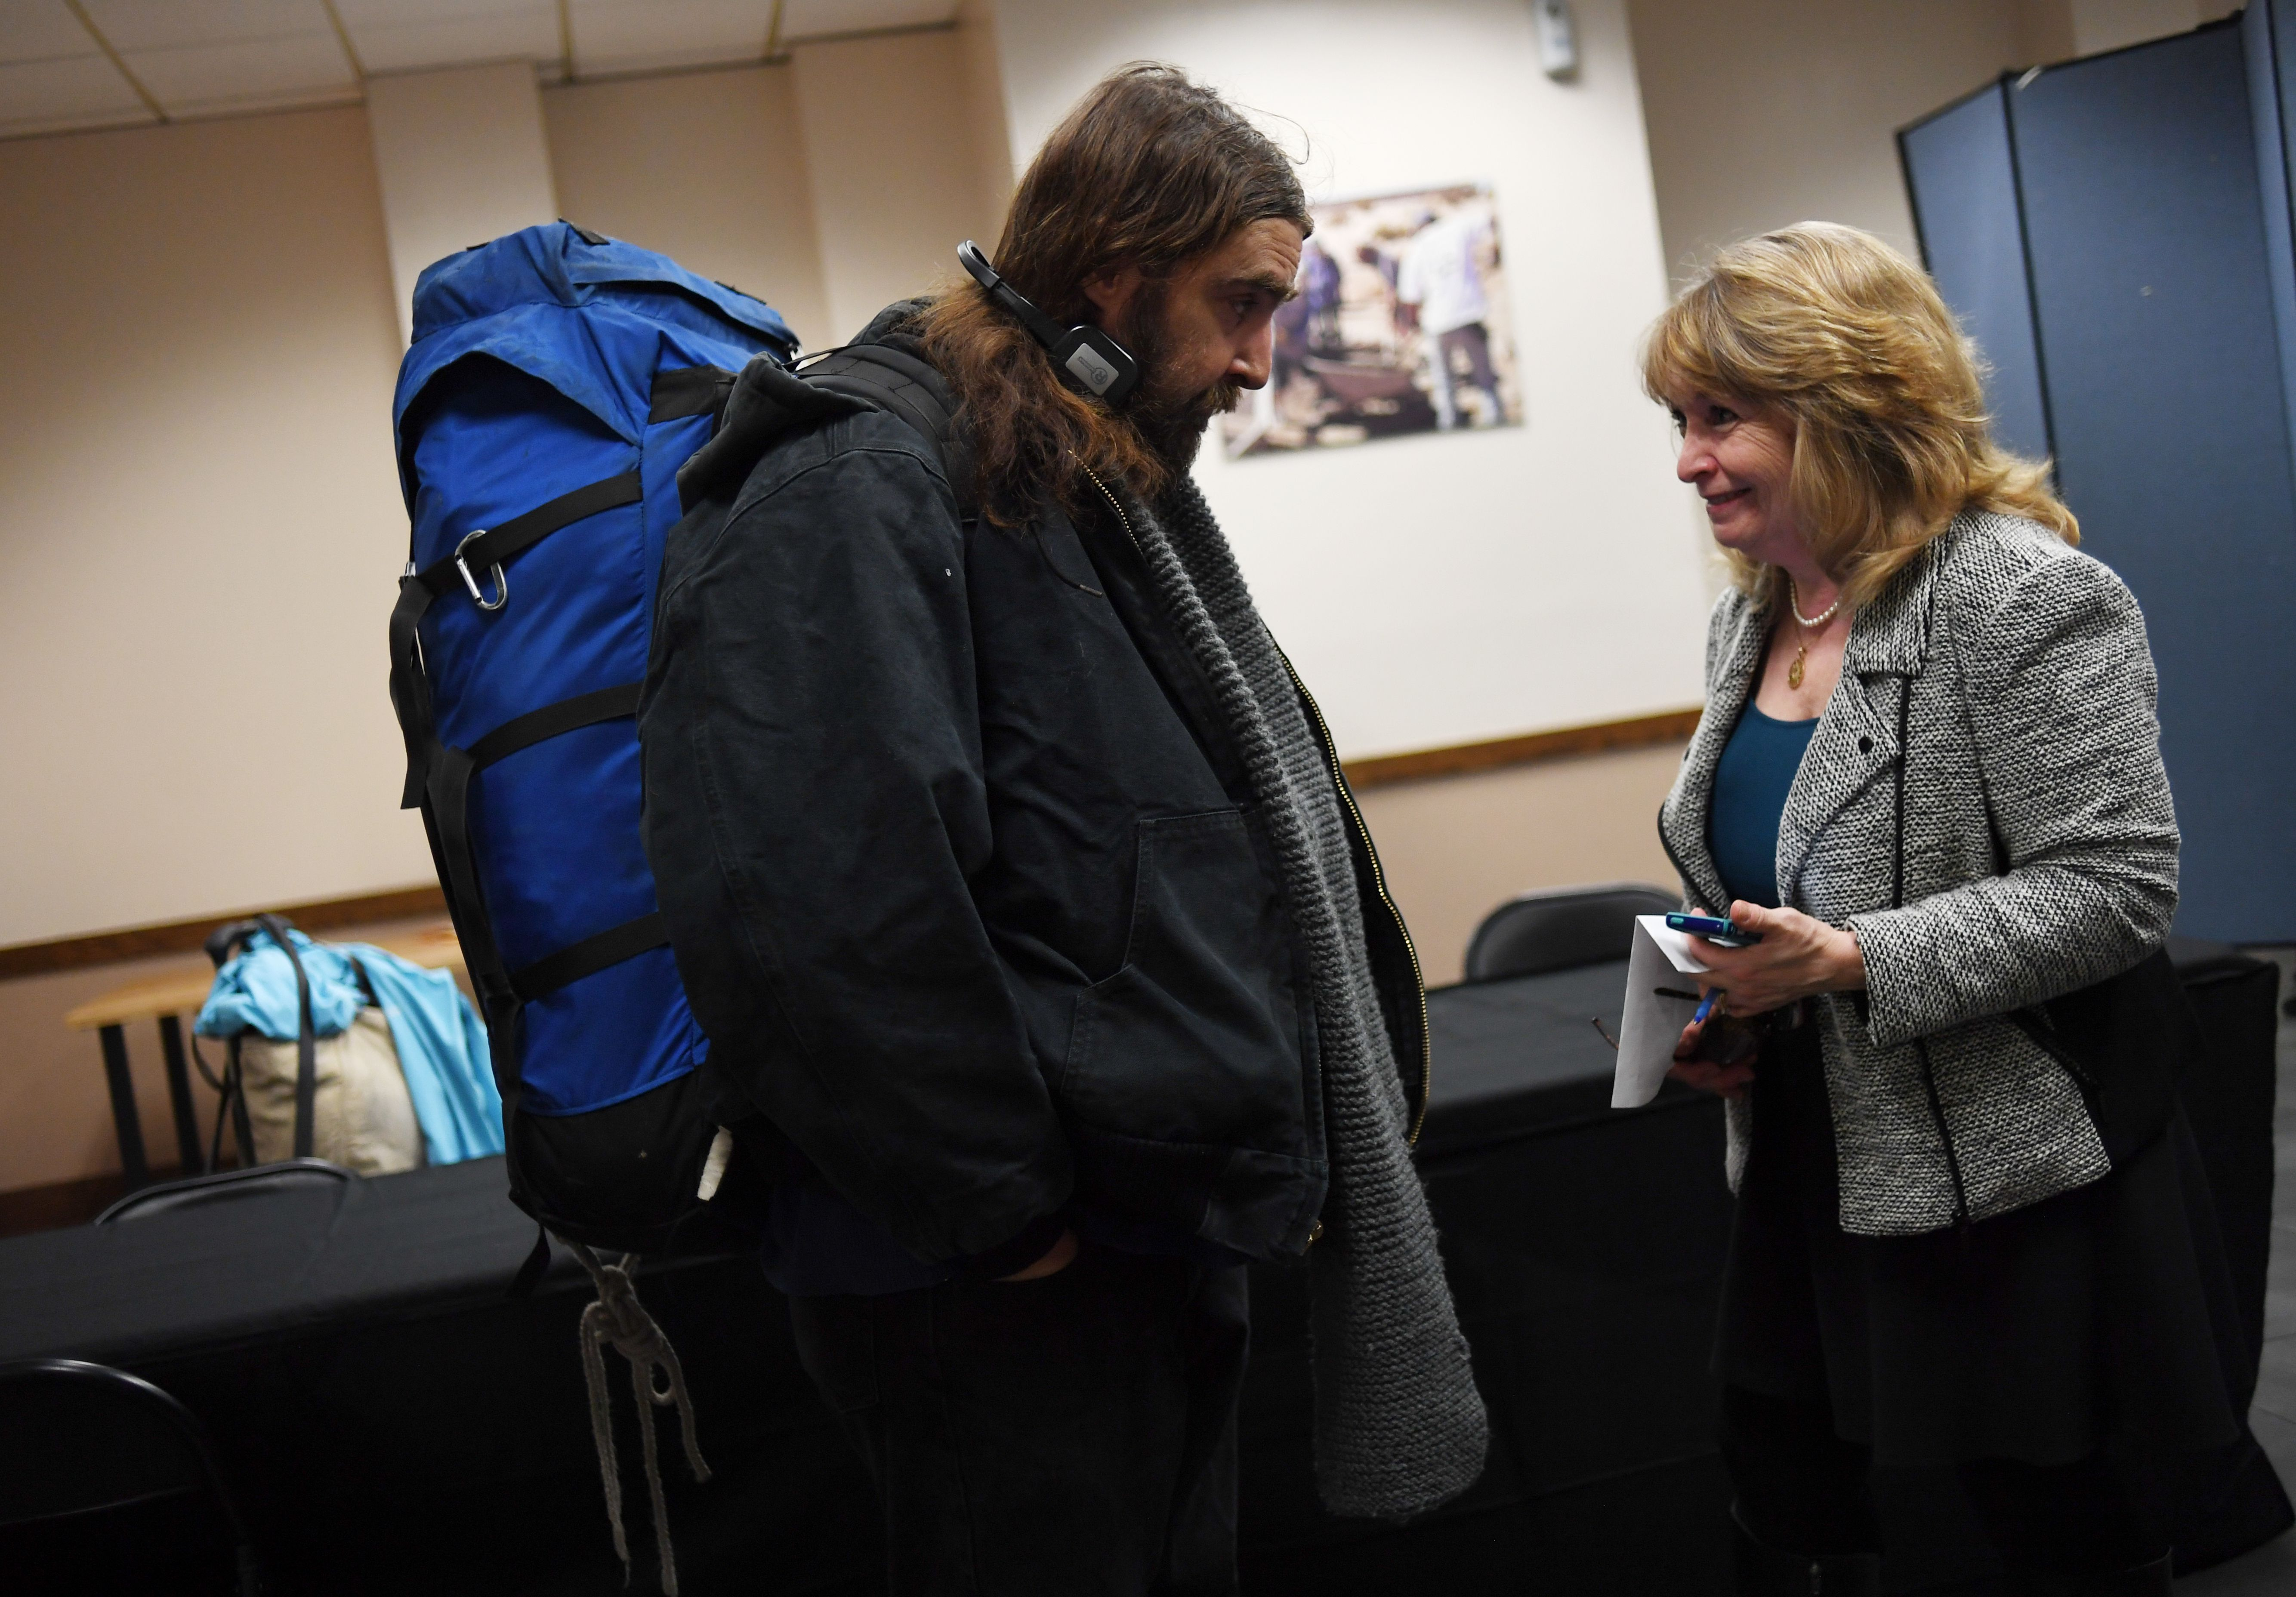 New Homeless Outreach Court Meets People Where They Are At Denver Rescue Mission Meeting People Helping The Homeless Human Services